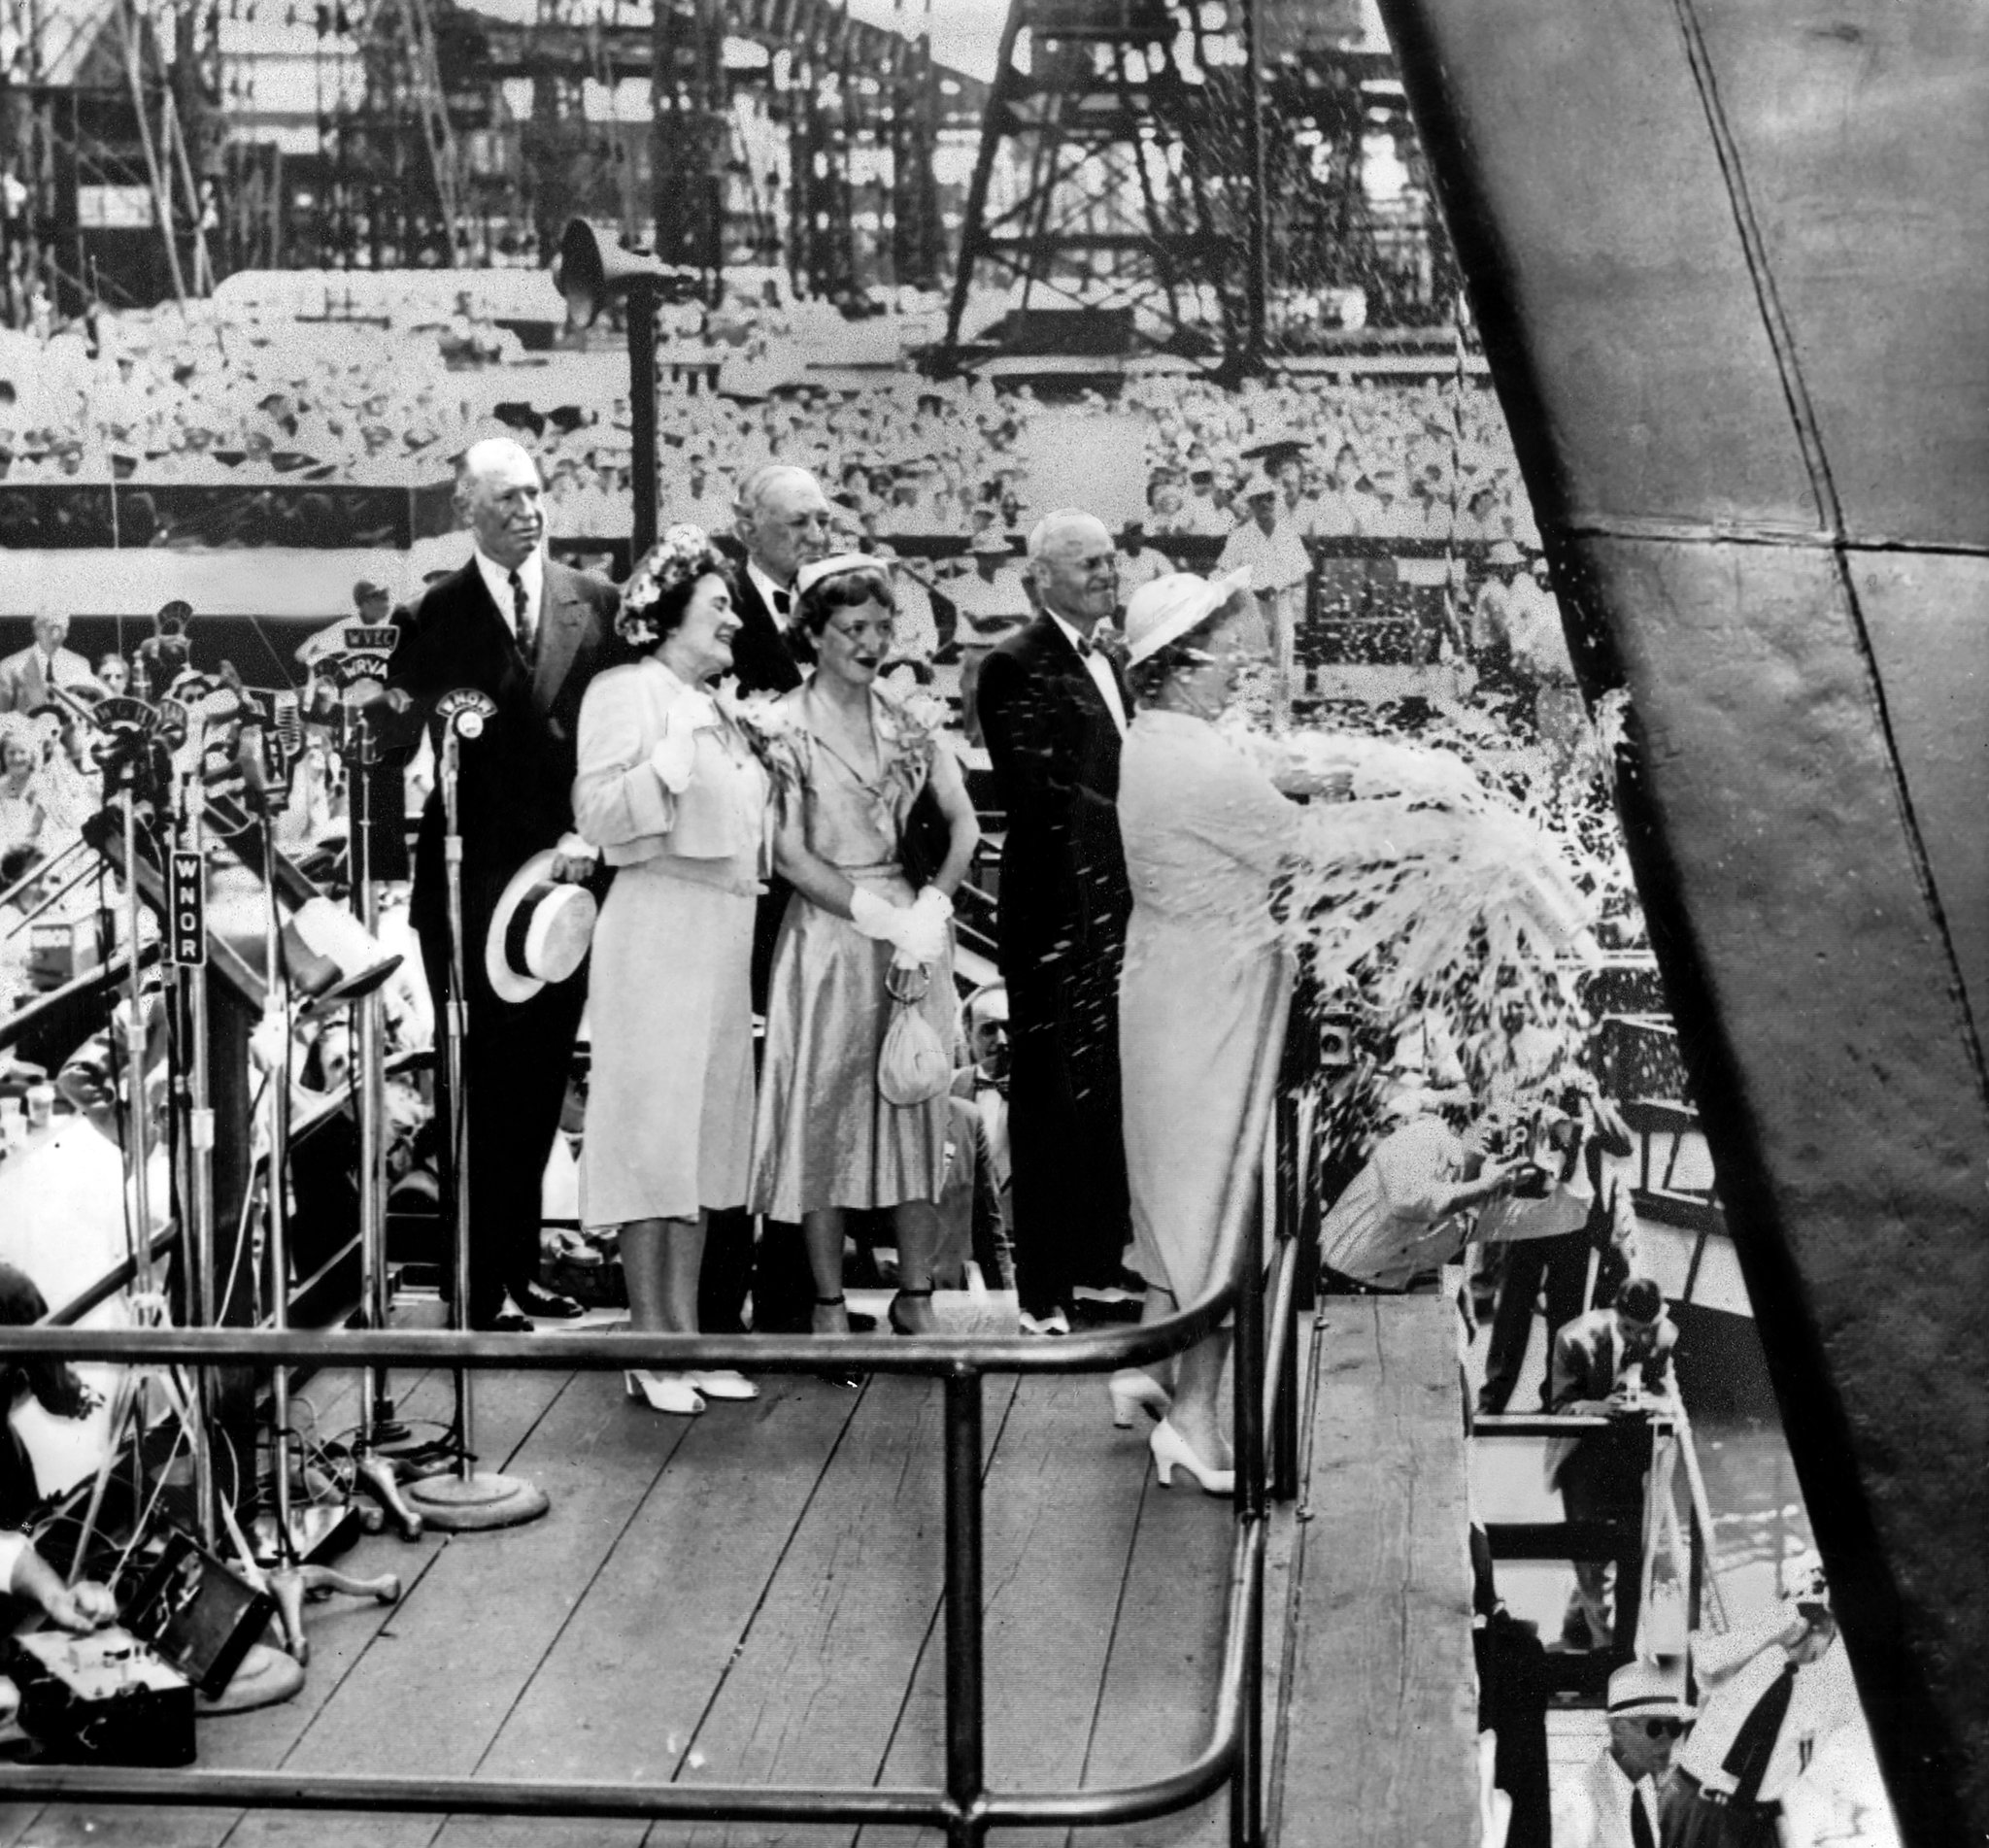 Christening of SS United States at Newport News Shipbuilding & Drydock Company on June 23, 1951.